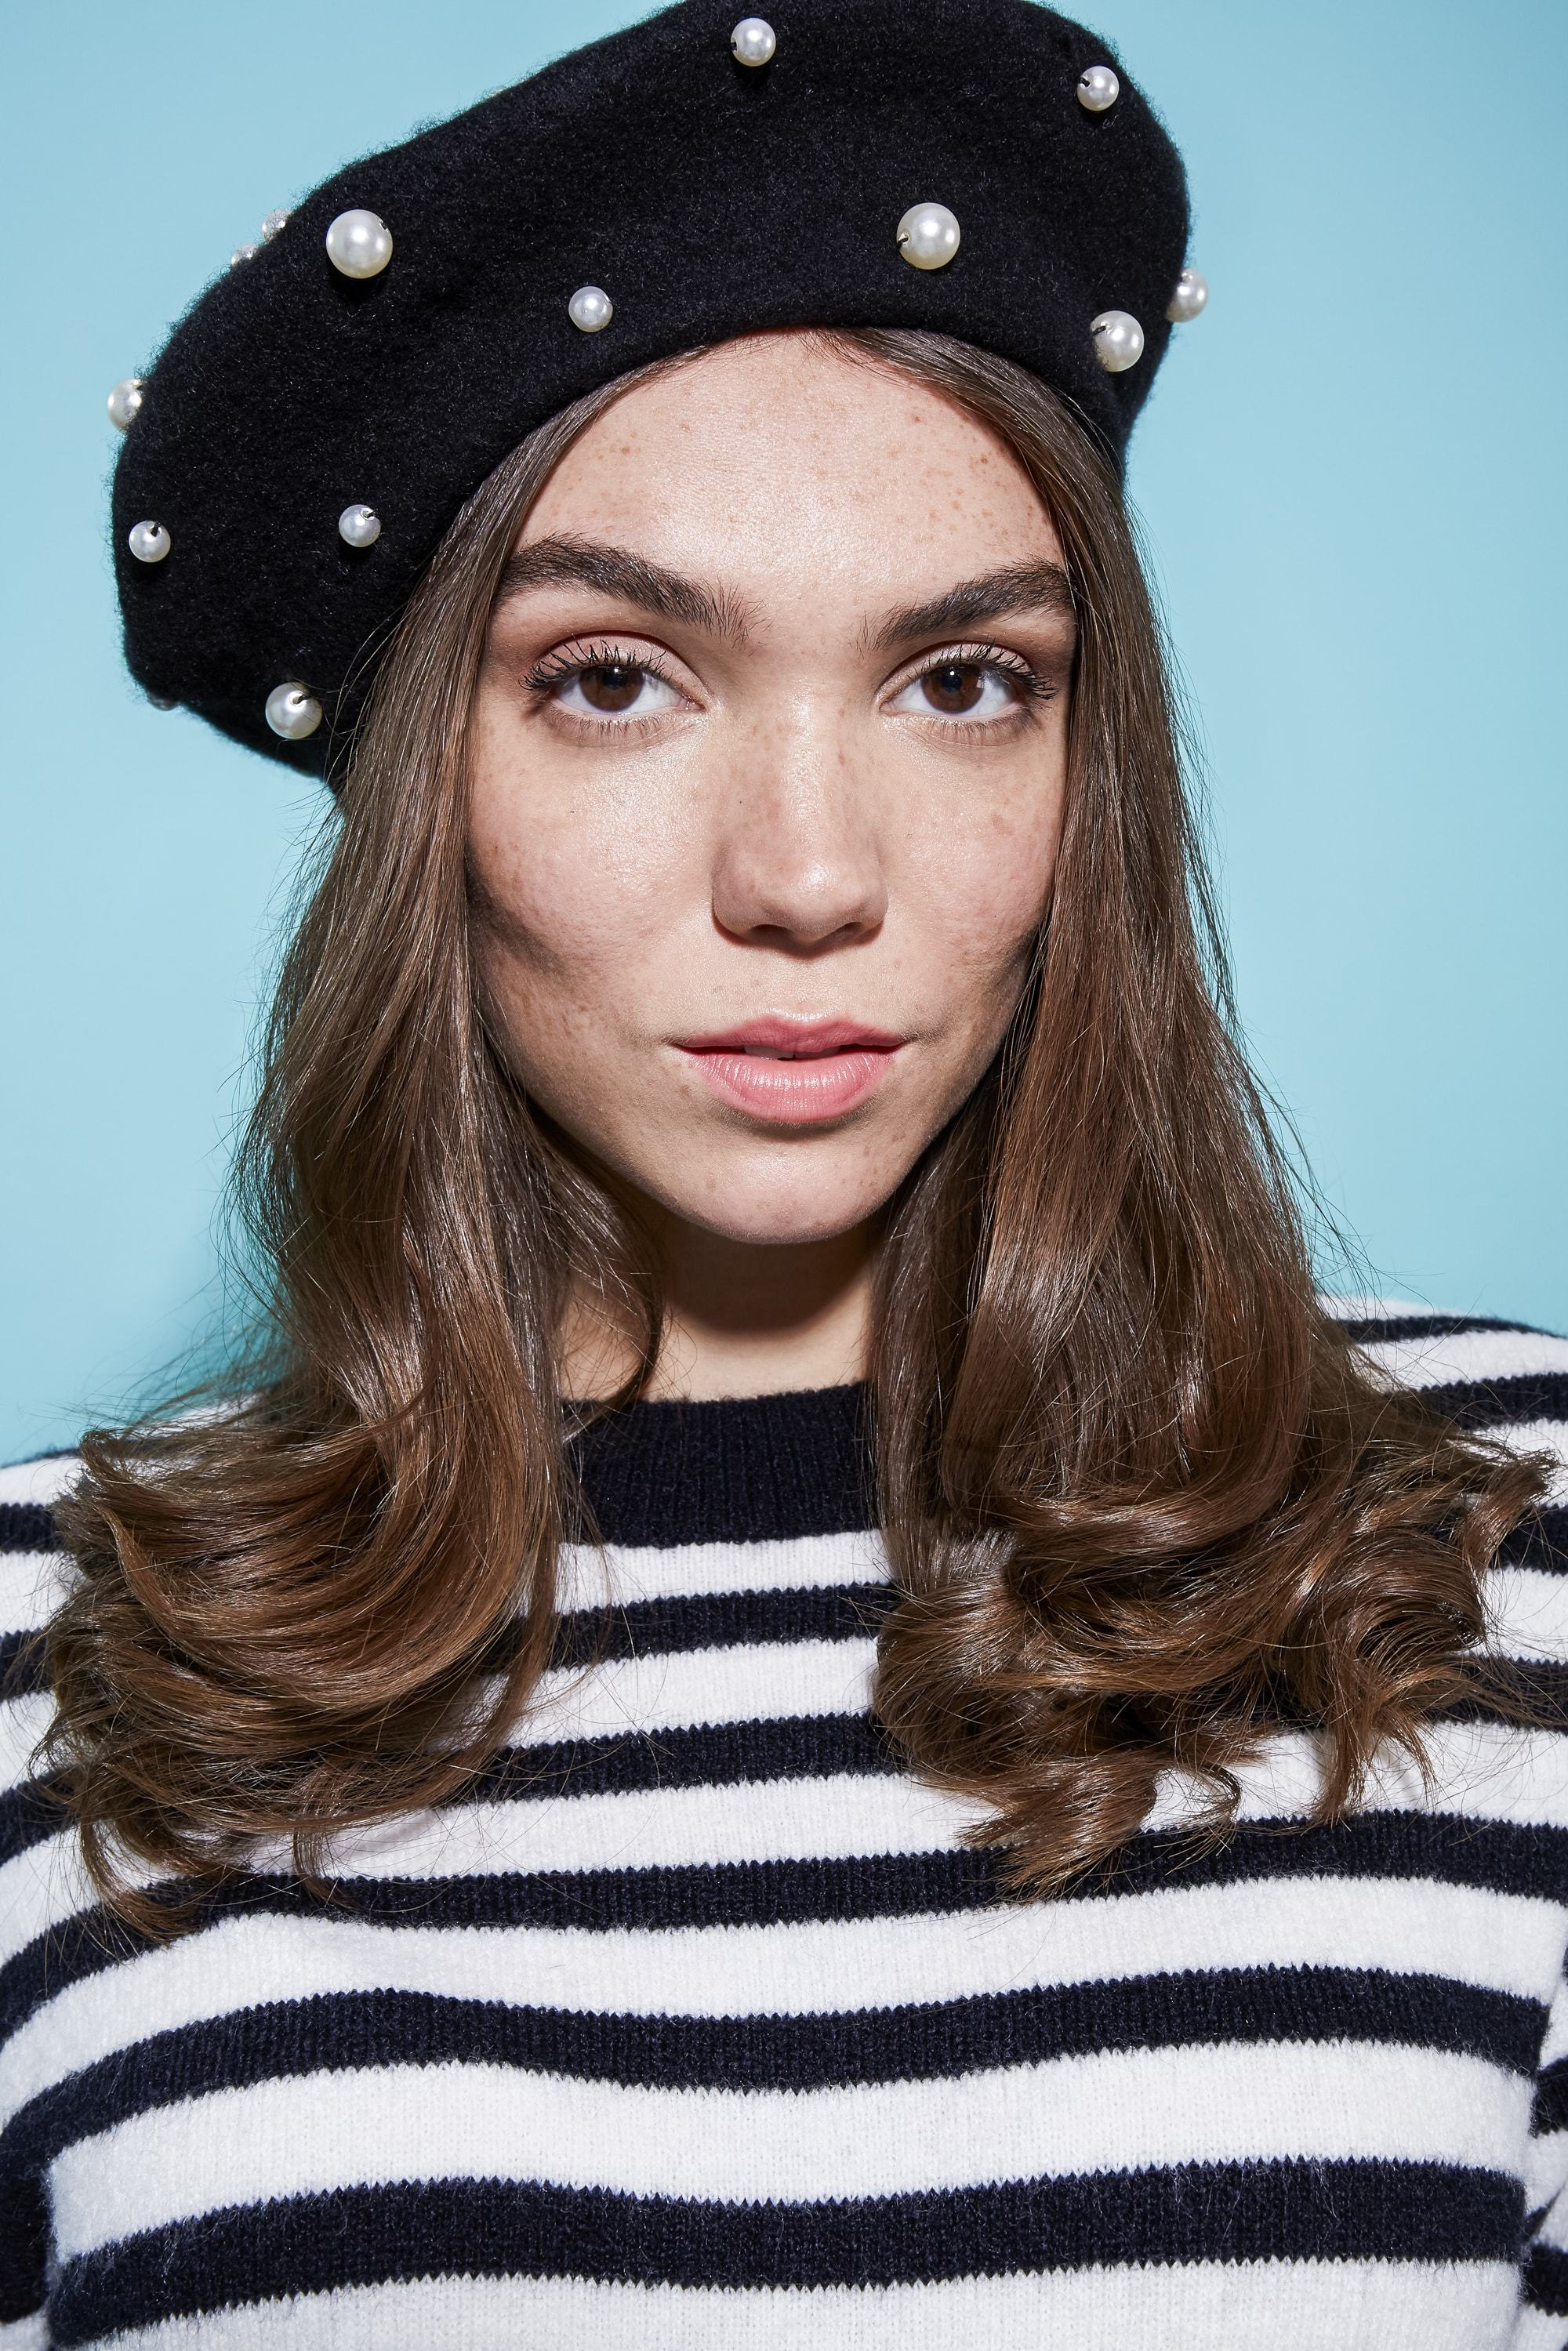 close up shot of model with loose curly hair, wearing pearly beret and striped top and posing inside a studio